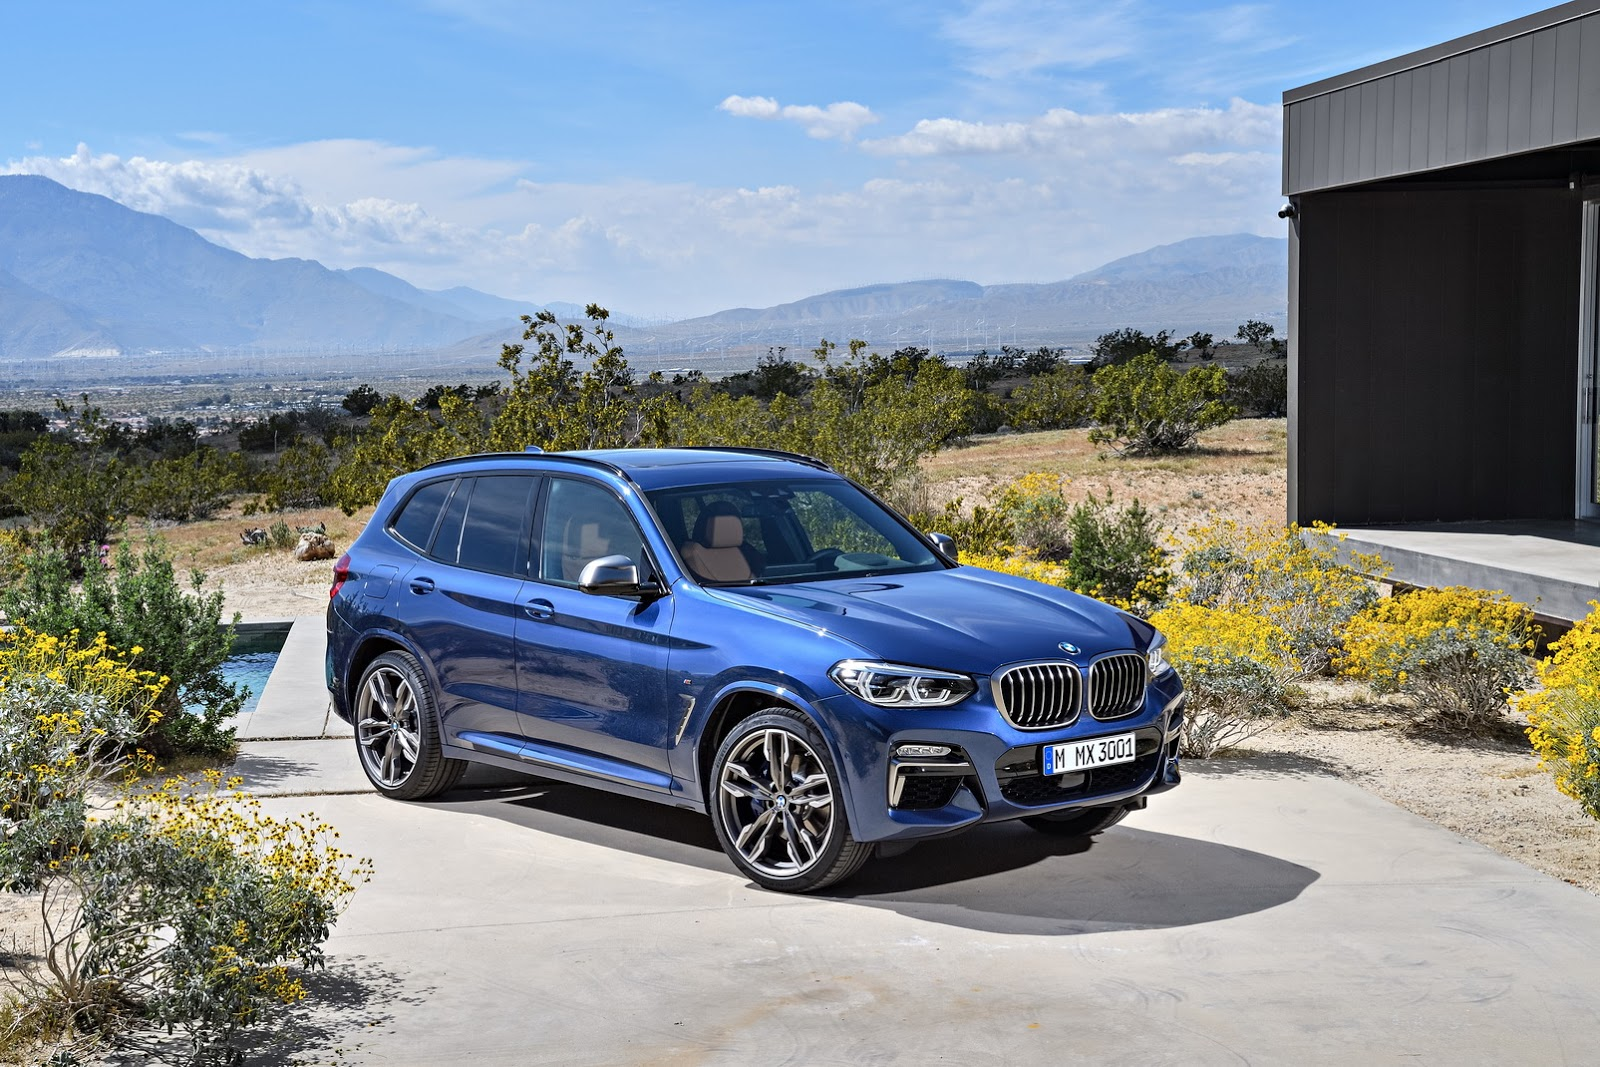 new 2018 bmw x3 interior and exterior images autocar india. Black Bedroom Furniture Sets. Home Design Ideas